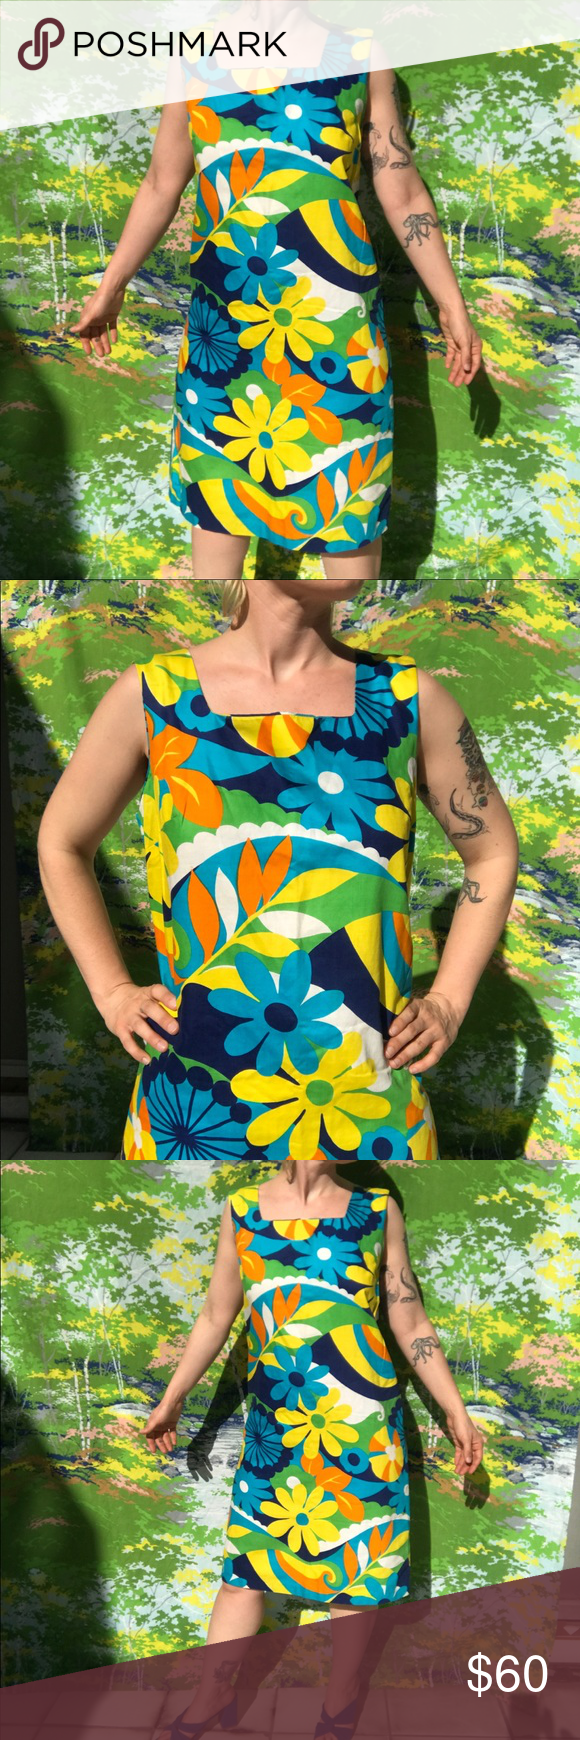 vintage 60s psychedelic mod midi Hawaiian dress ❣️ amazing vintage 60s psychedelic mod mid length Hawaiian dress 🌺 | bright yellow blue green orange daisy print 🌼 by aloha authentic hawaiian originals | a few light marks | does not include green belt but looks great styled with a colorful belt and your favorite lace up boots and white fishnets | made in USA 🇺🇸 | zip back closure   fits S to M ❣️ unisex | pit to pit 19 | length 33    American Vintage D